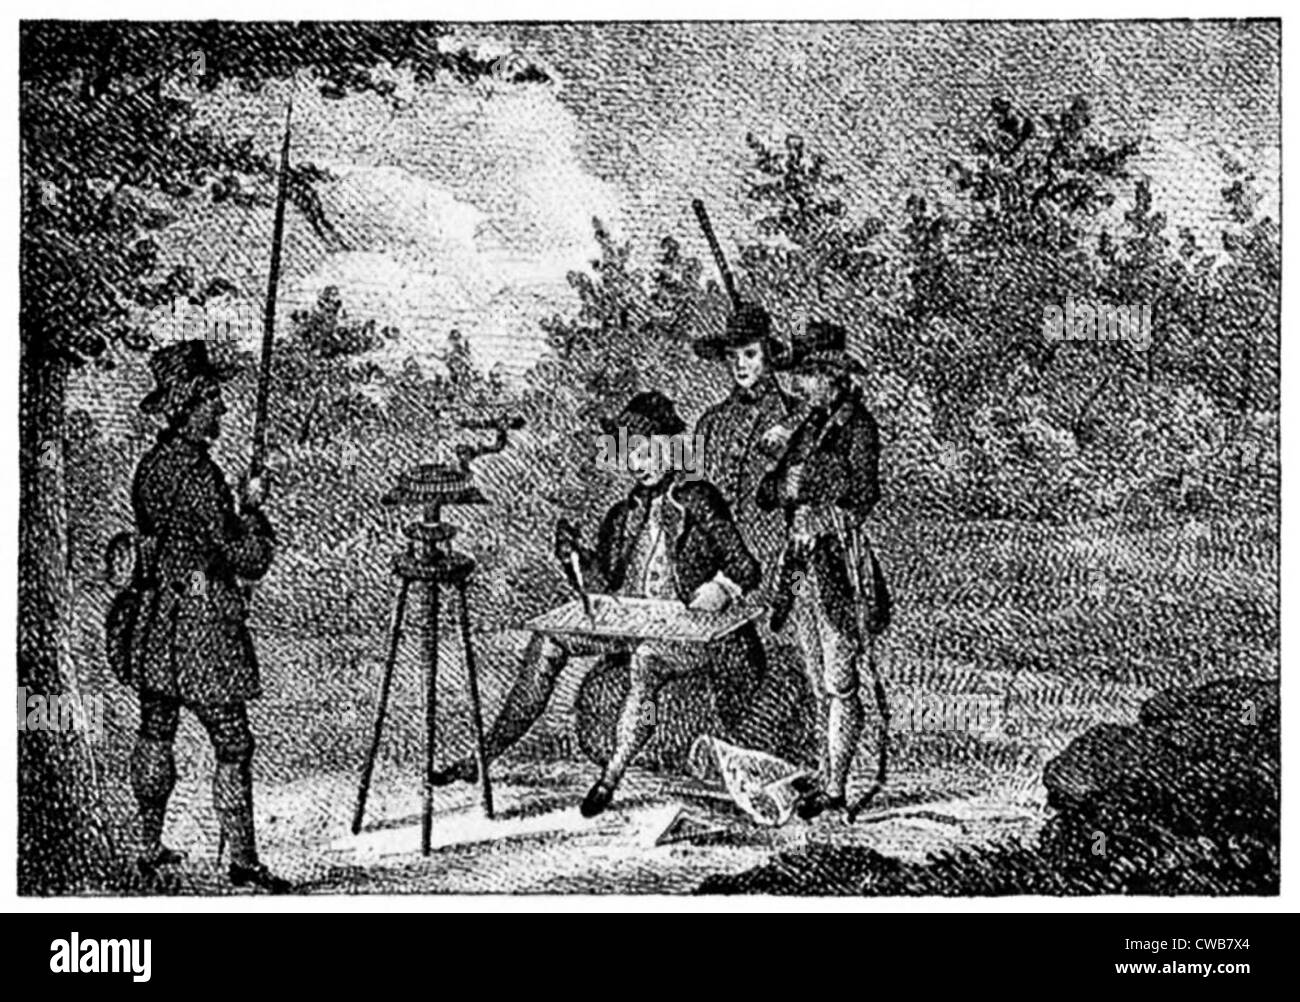 George Washington as a young surveyor. early 19th century engraving - Stock Image